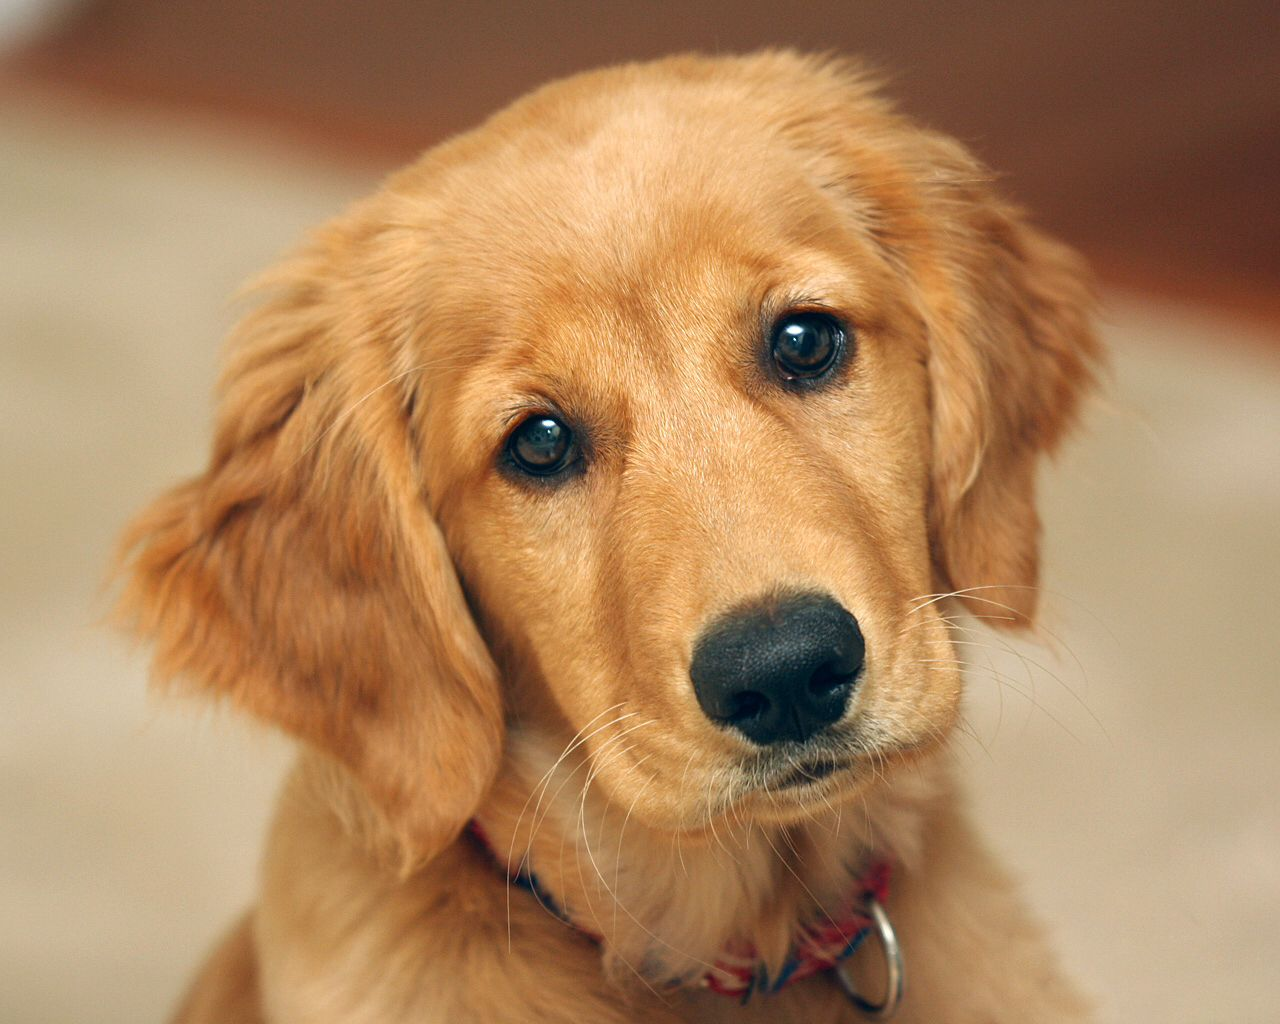 Puppy Dog Eyes Cute Animals Pets Puppies